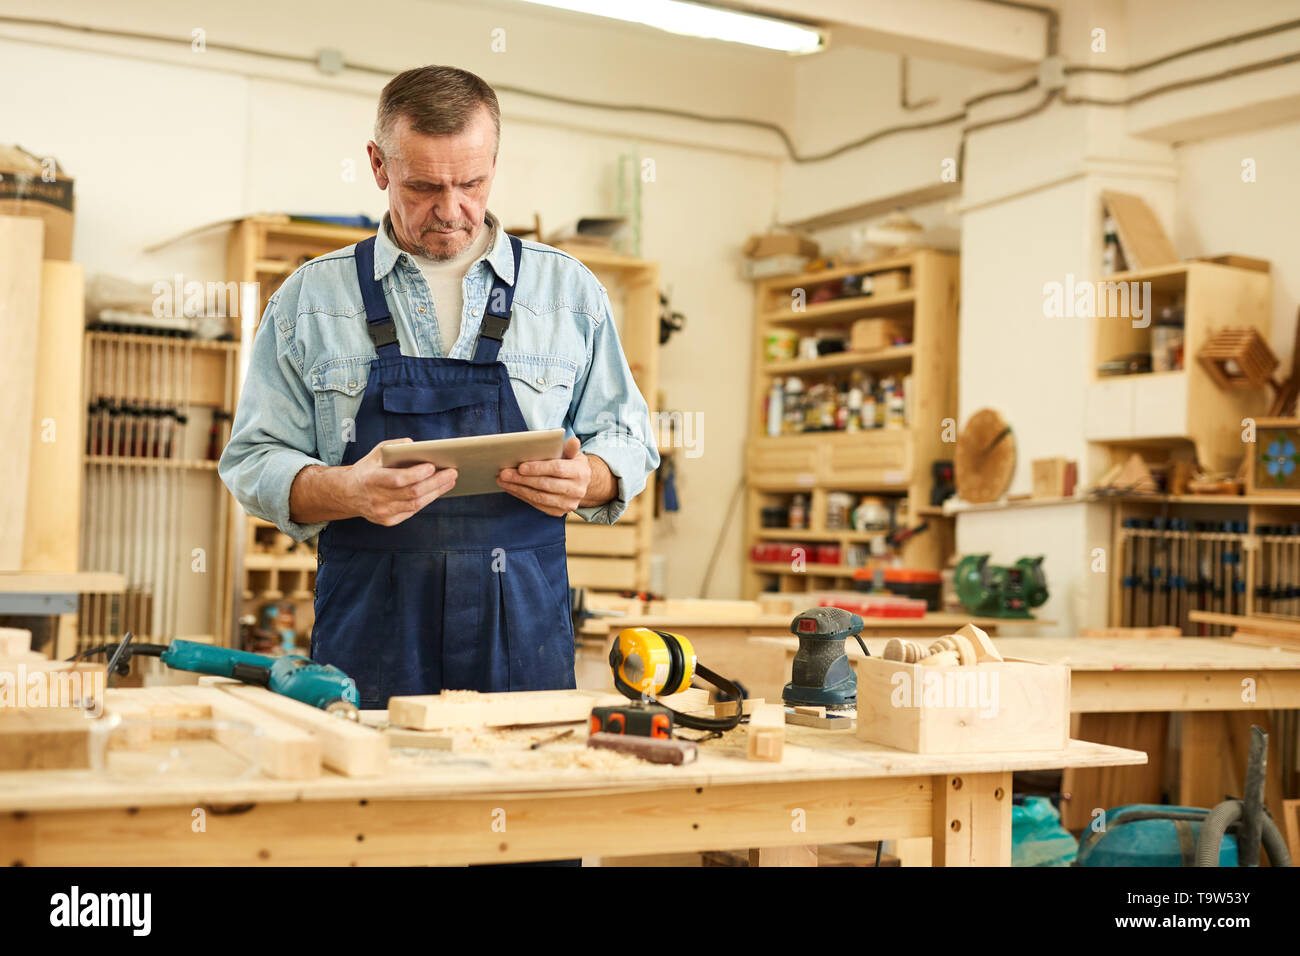 Waist up portrait of senior carpenter using tablet while working in joinery, copy space - Stock Image